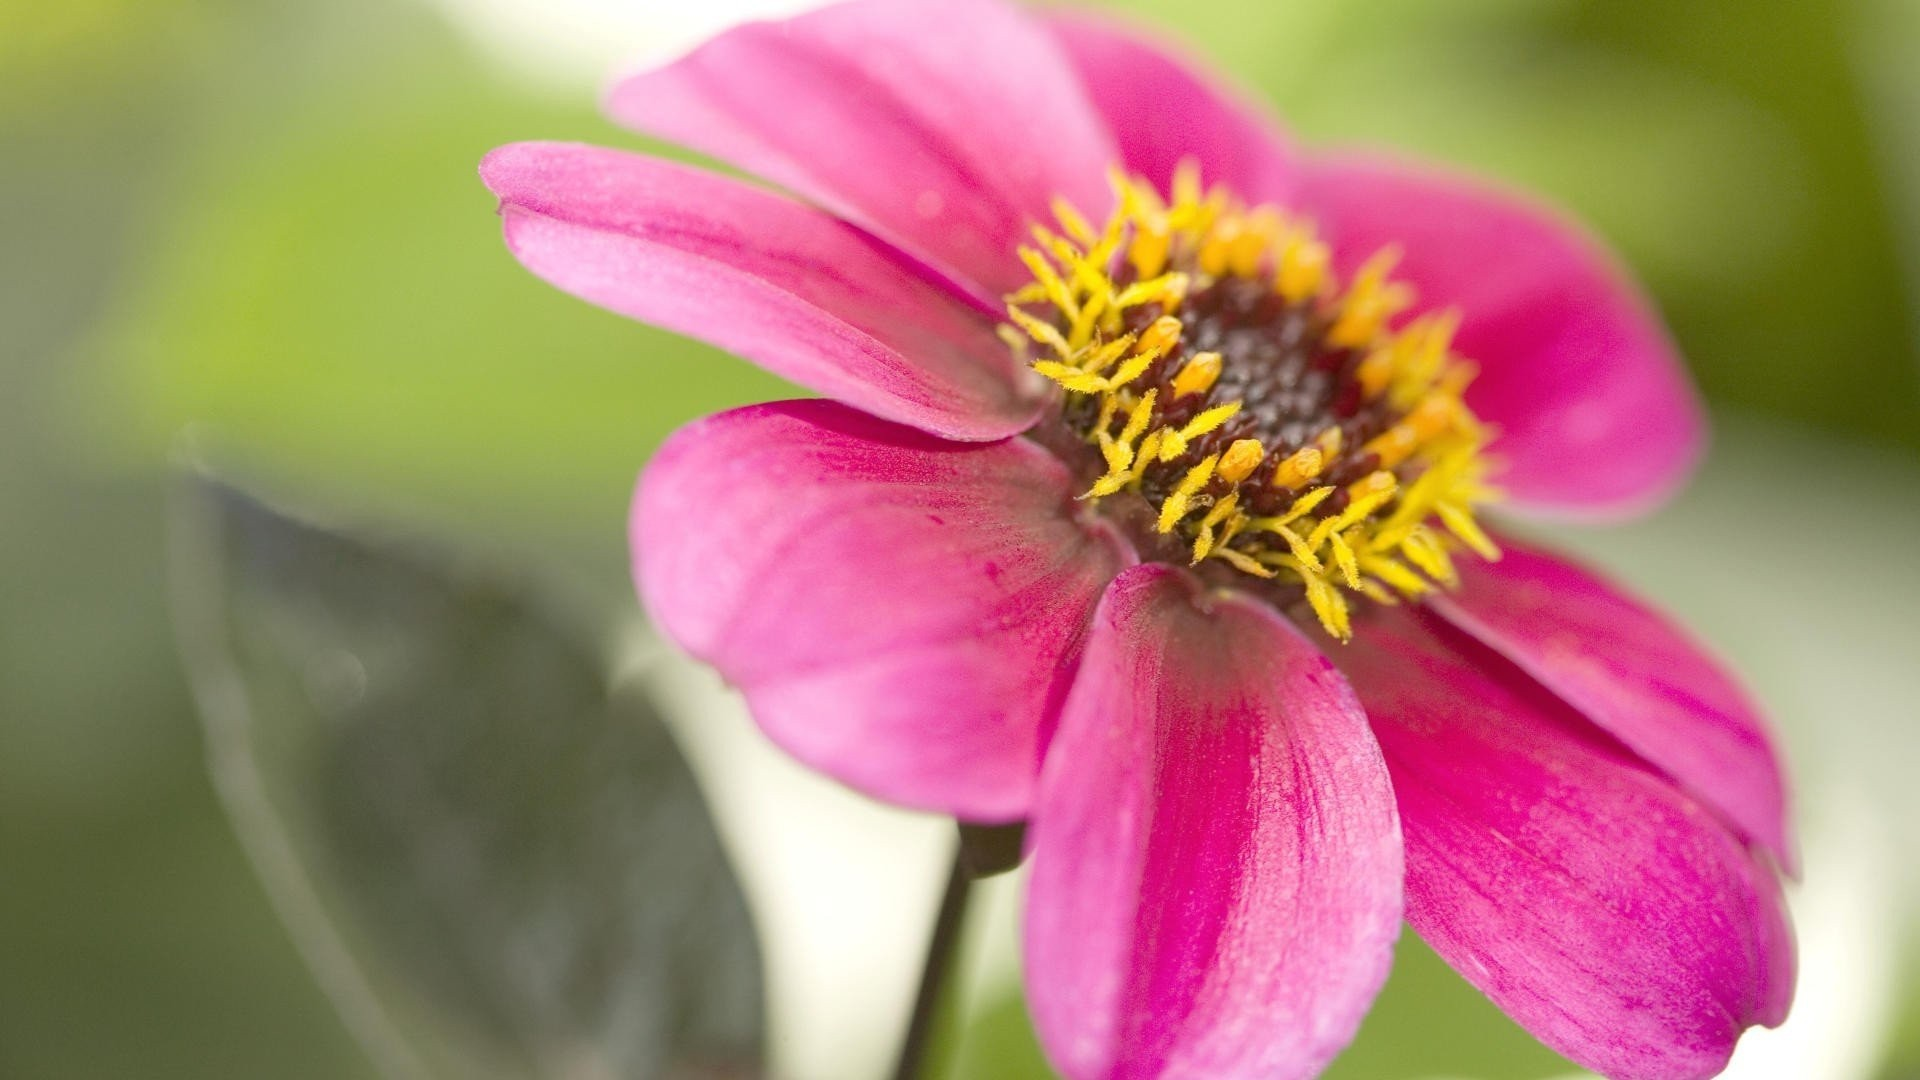 #555522 Color – Flowers Pink Nature Hd Themes For Windows 8 for HD 16: